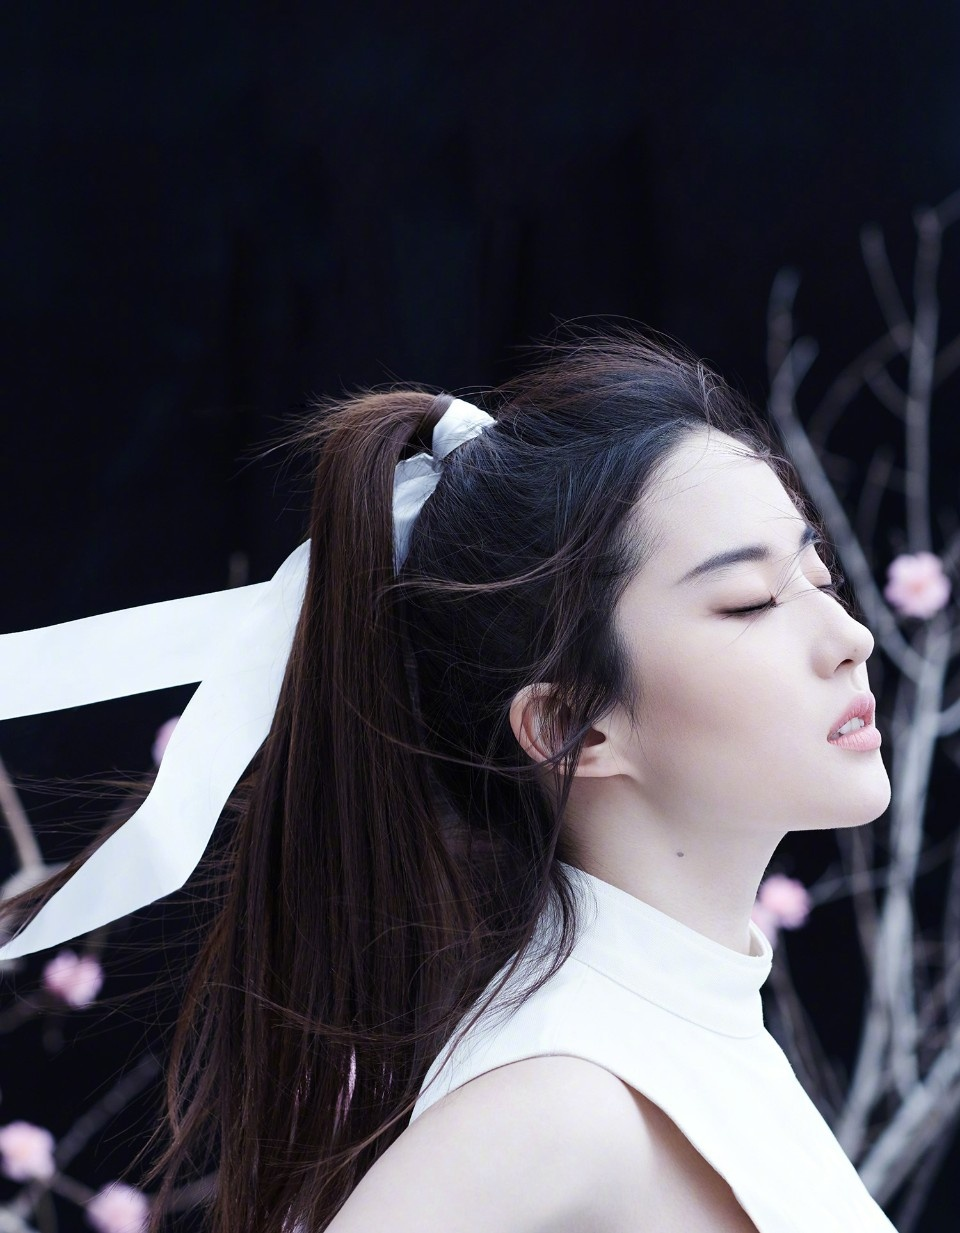 Liu Yi Fei Is Now On Instagram Twitter Does Photoshoot Looking A